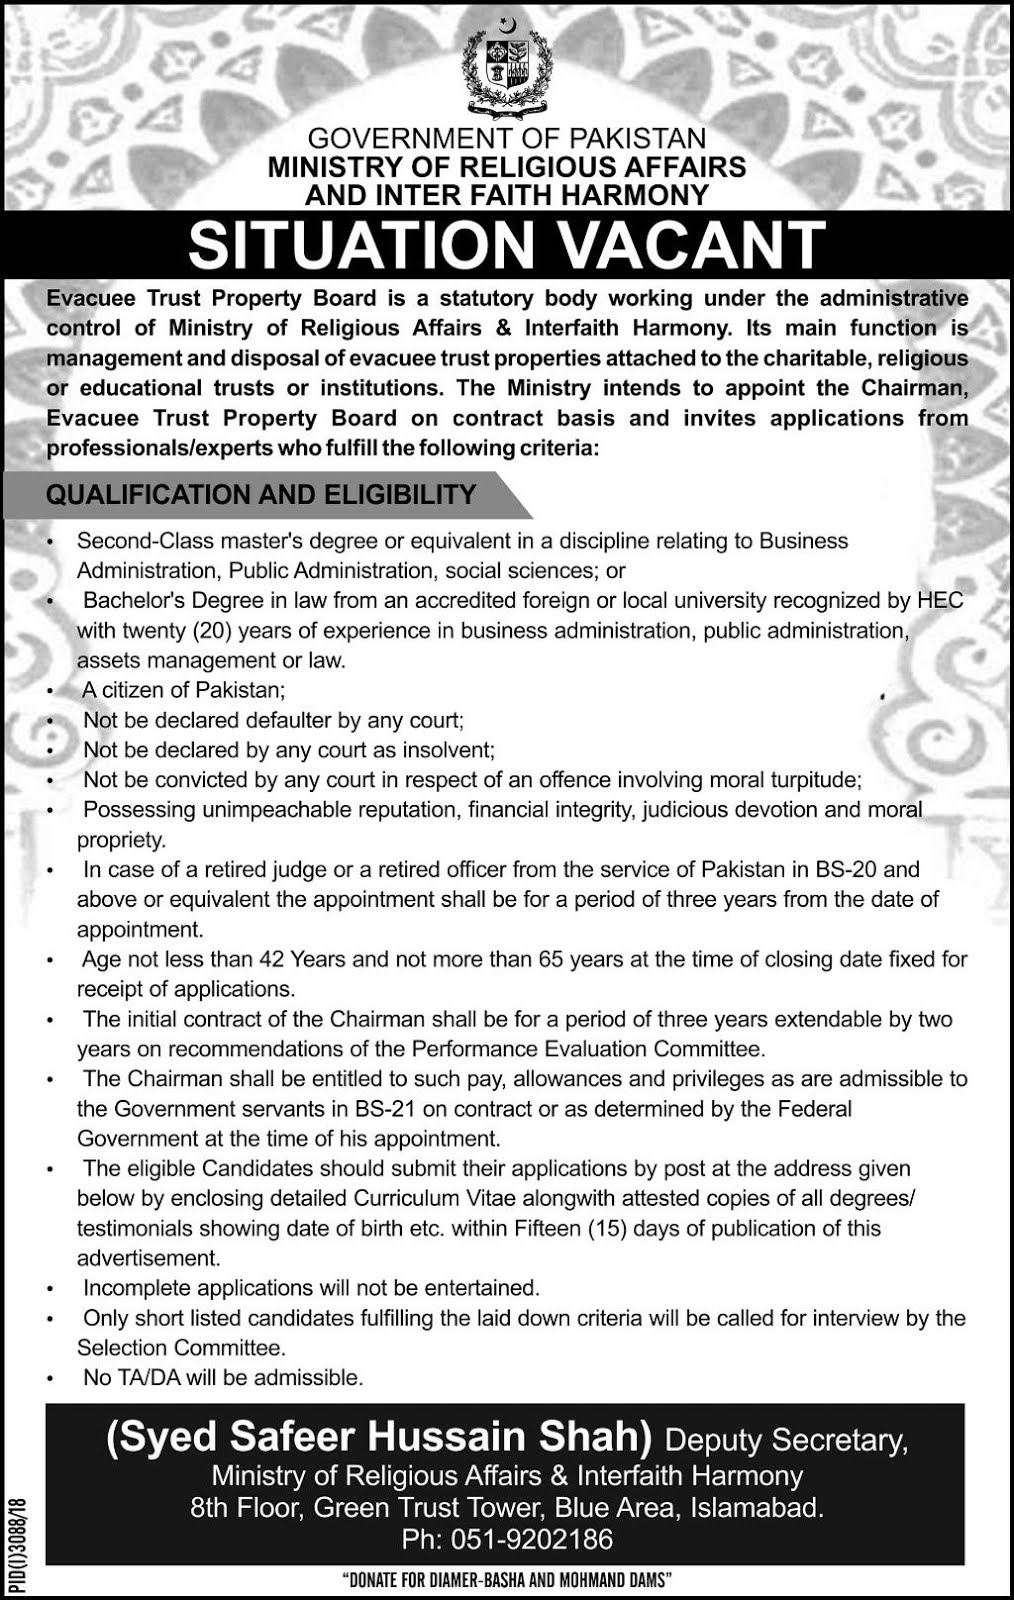 Latest Jobs in n Ministry Of Religious Affairs - Govt Of Pakistan Jobs January 2019 jobs in pakistan,jobs in pakistan 2018,jobs in universal testing services,canada minister of defense,the prohibition of riba in the quran and sunnah,defense minister of canada,canada minister of defence,defence minister of canada,an islamic view of gog and magog in the modern age,social affairs,ministry,president of bill & melinda gates,news in india,breaking news,bill gates in pakistan